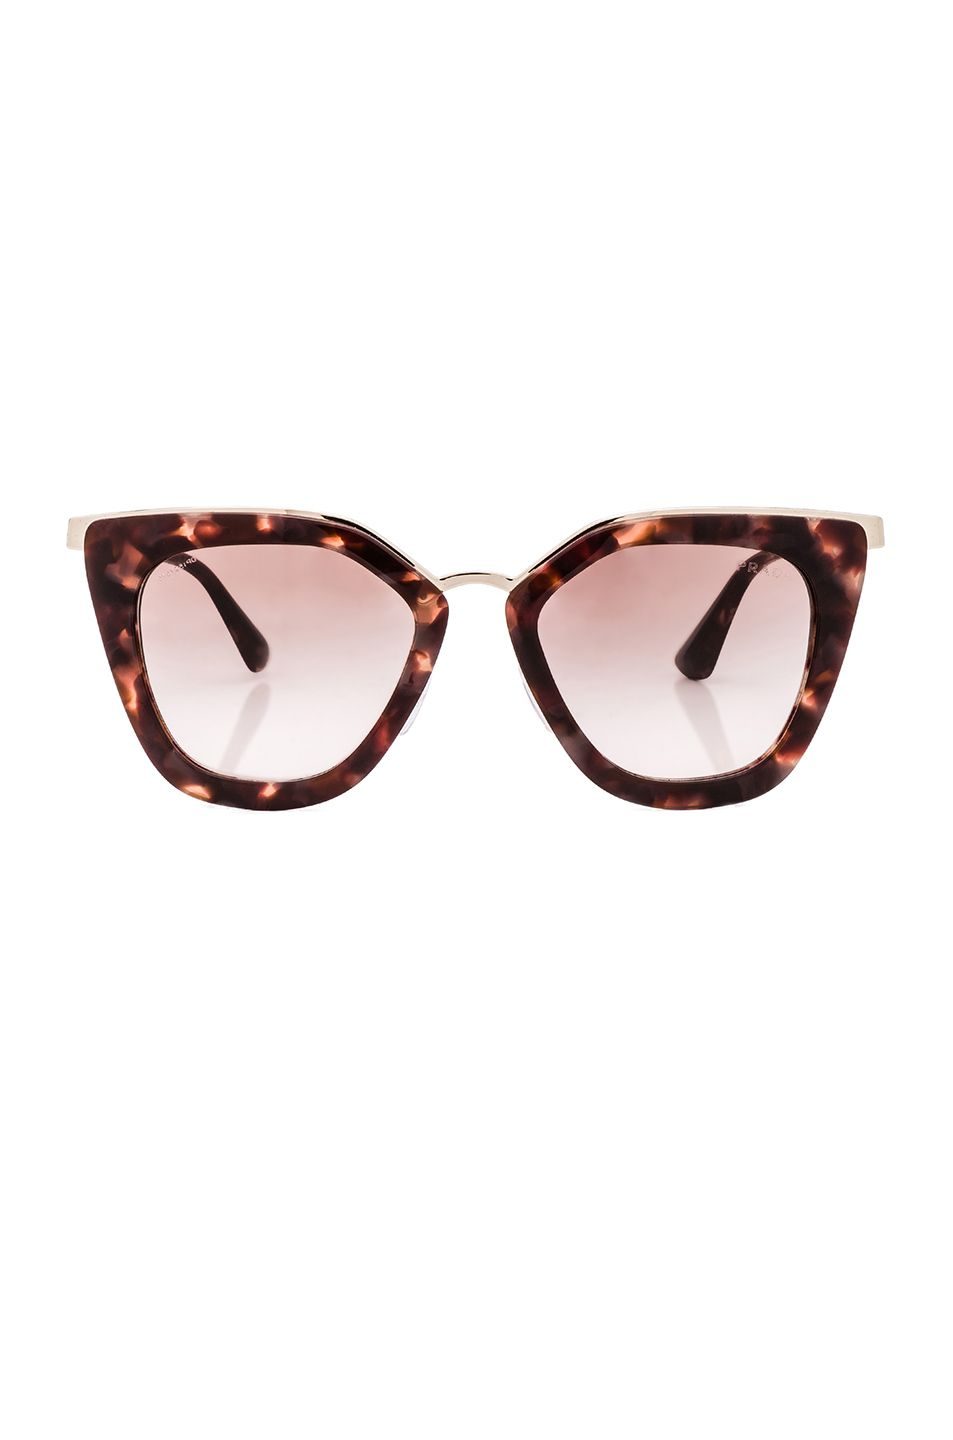 355 - Prada Square Sunglasses in Spotted Brown Pink   accessories ... 793a65d64f